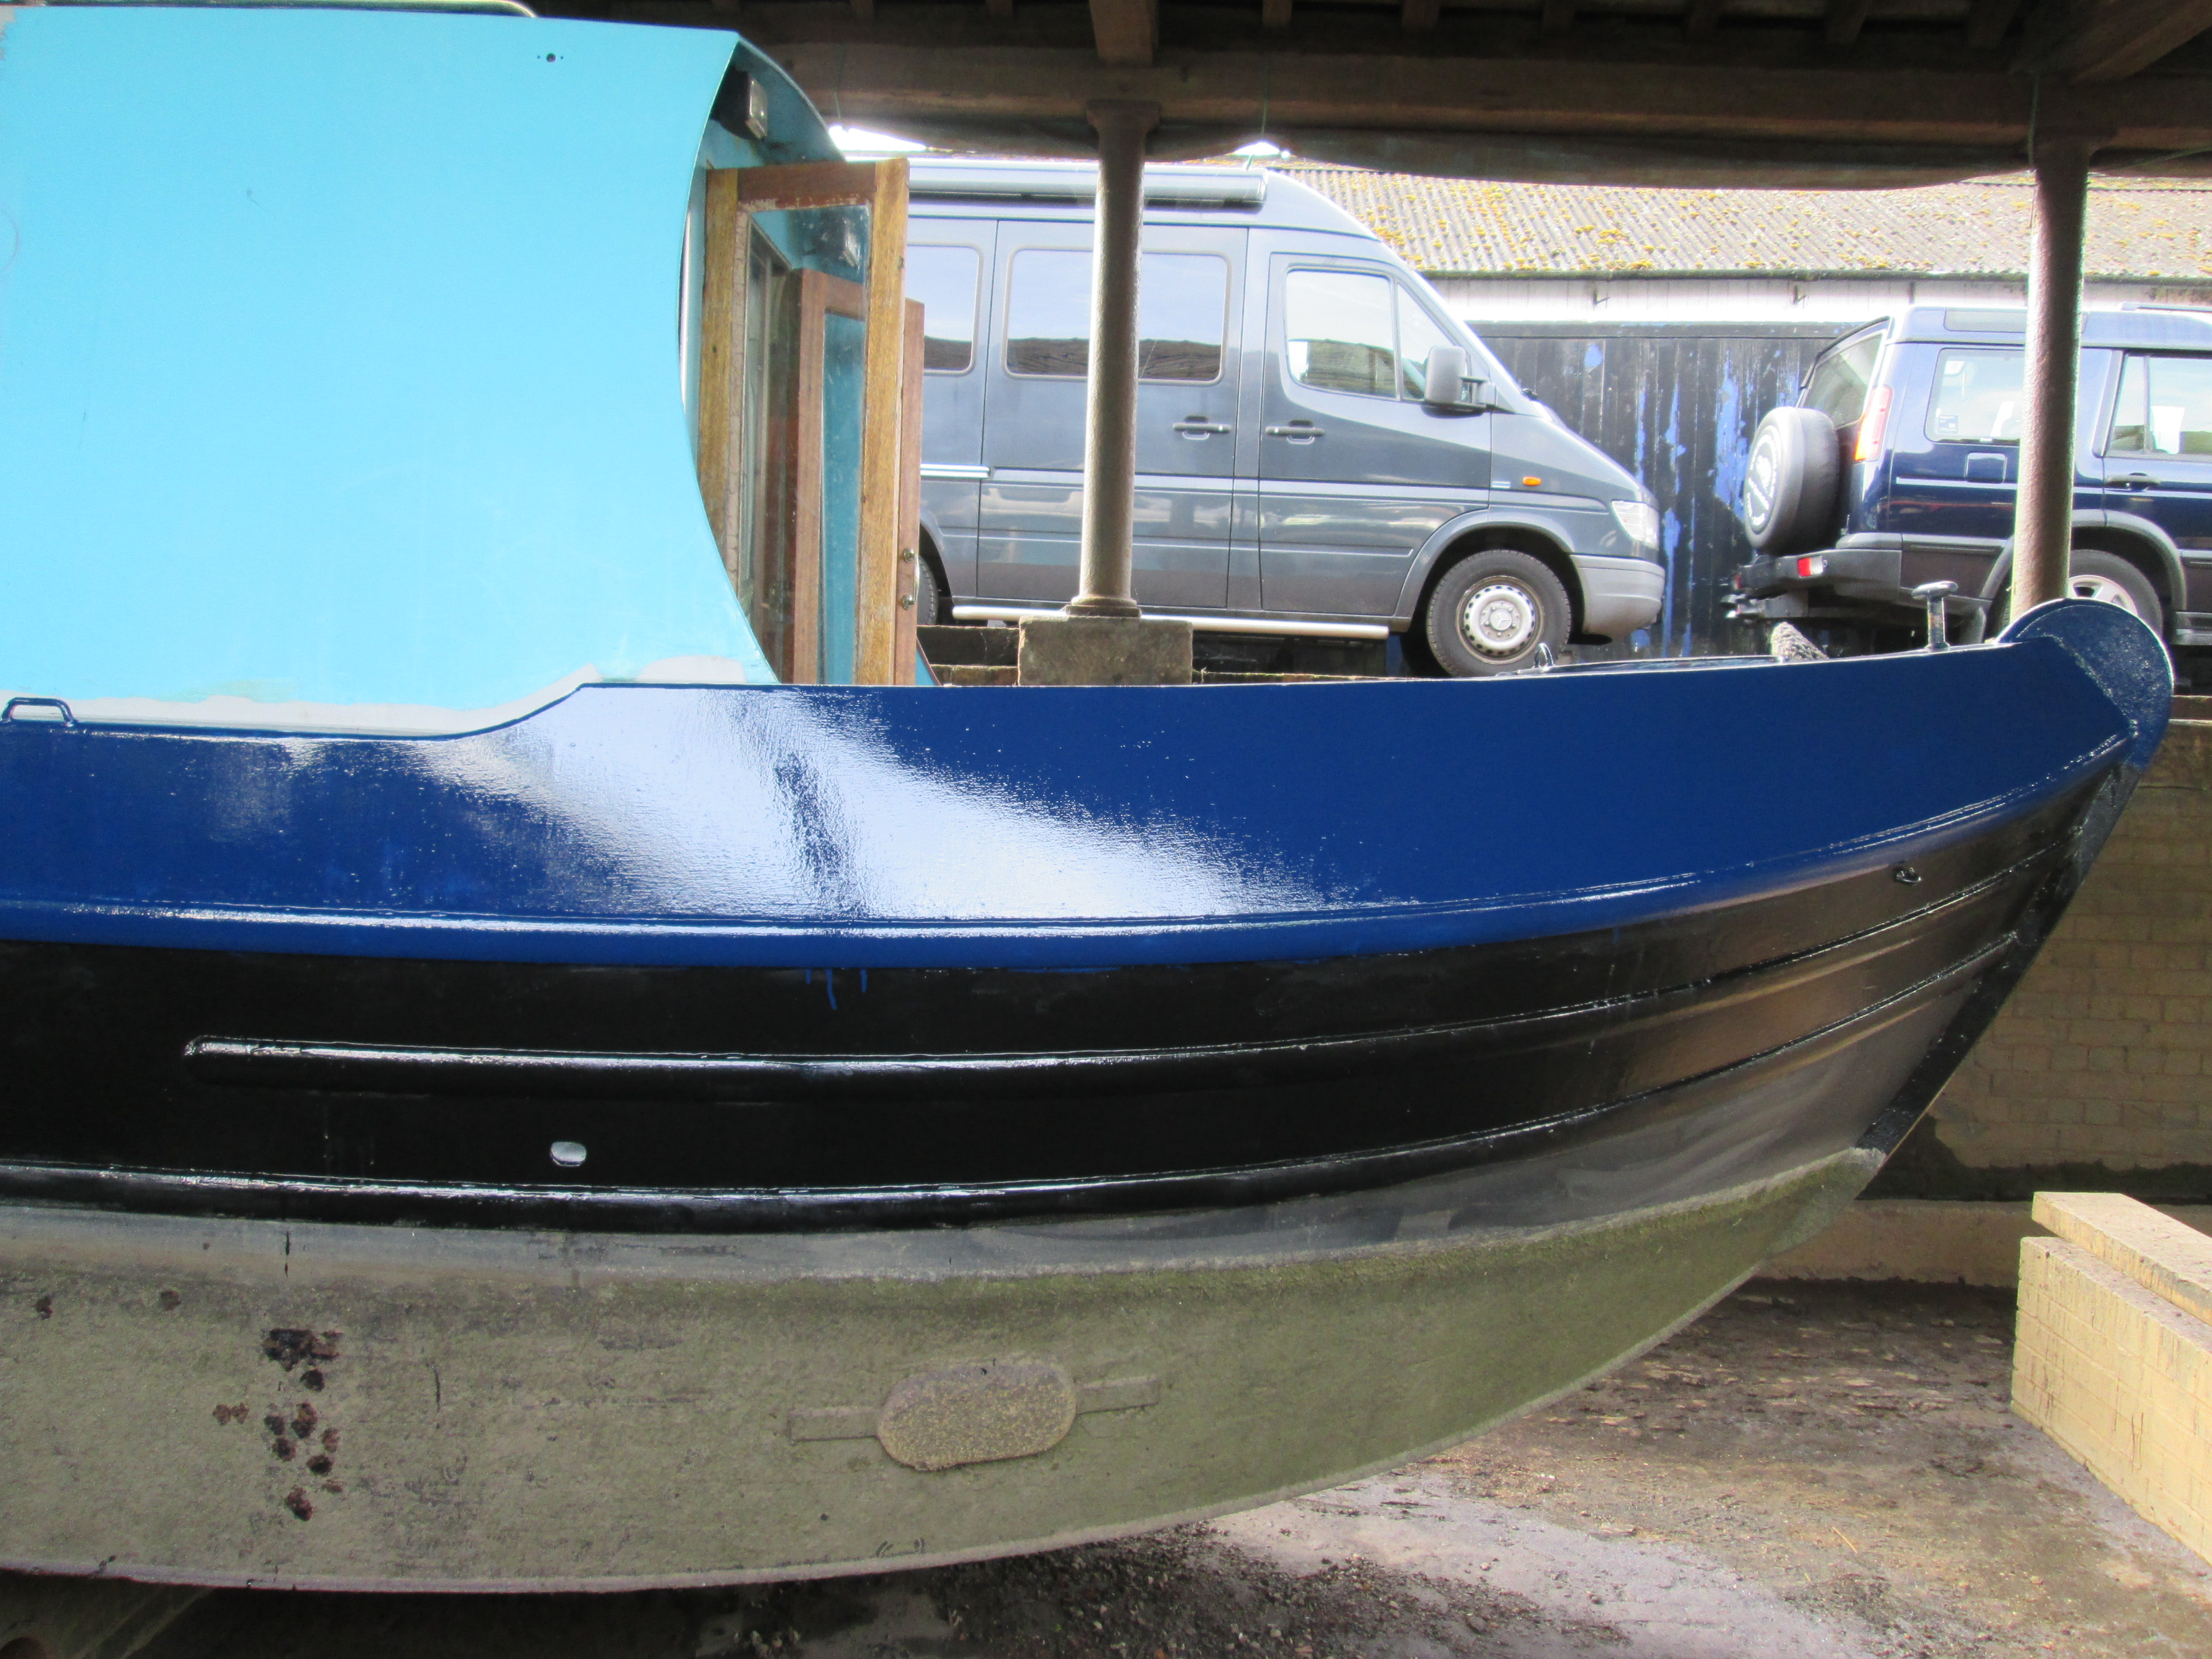 Boat painting - Day 5 - Topcoating the hull